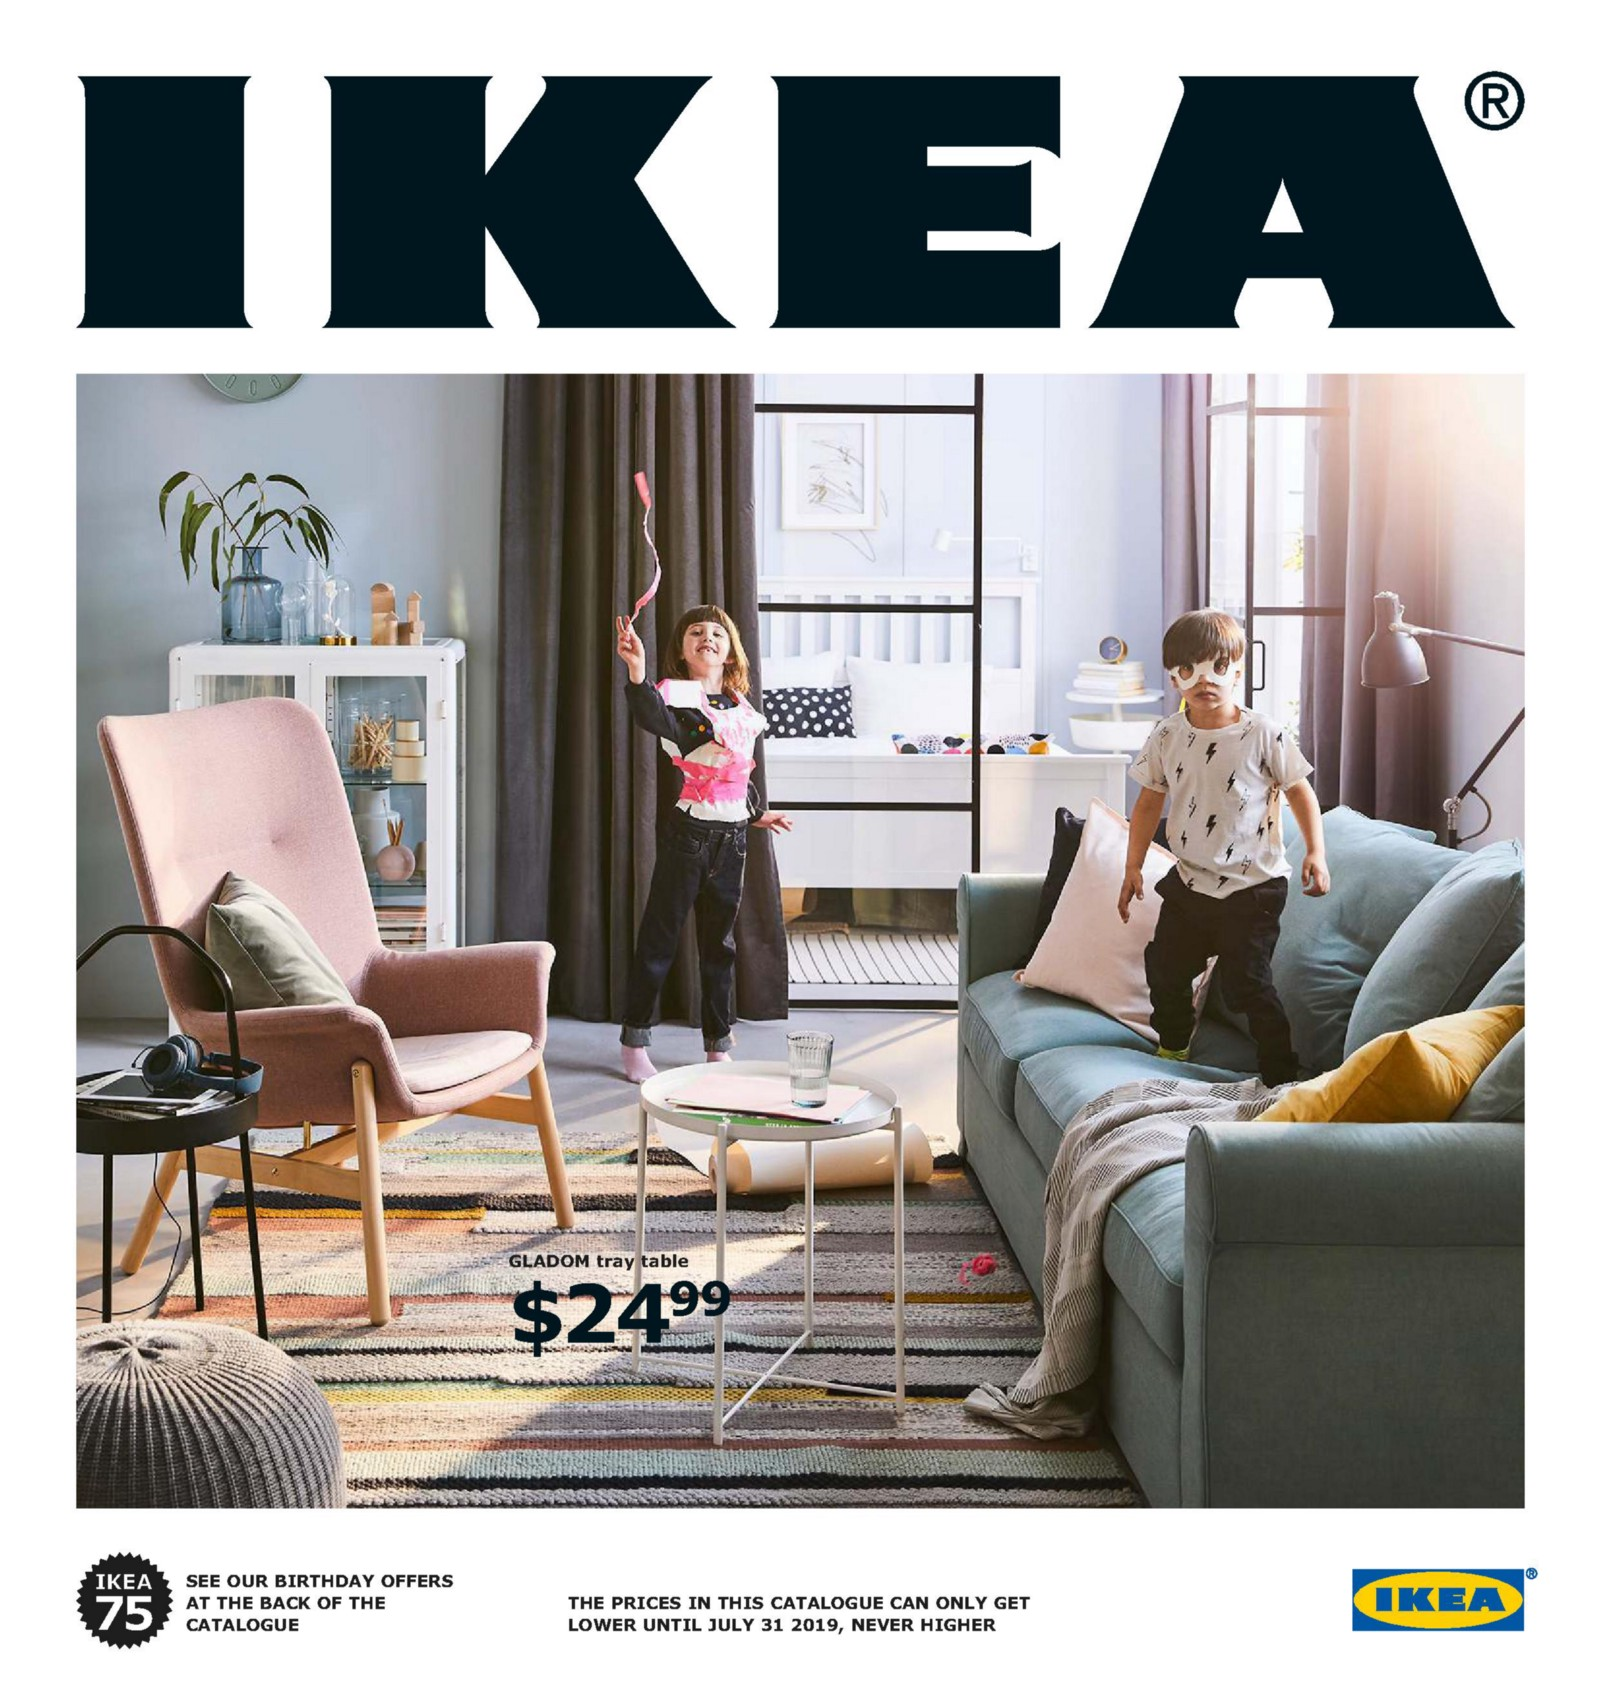 How Ikea Allows Us To Dream Reviewing The 2019 Ikea Canada Catalogue